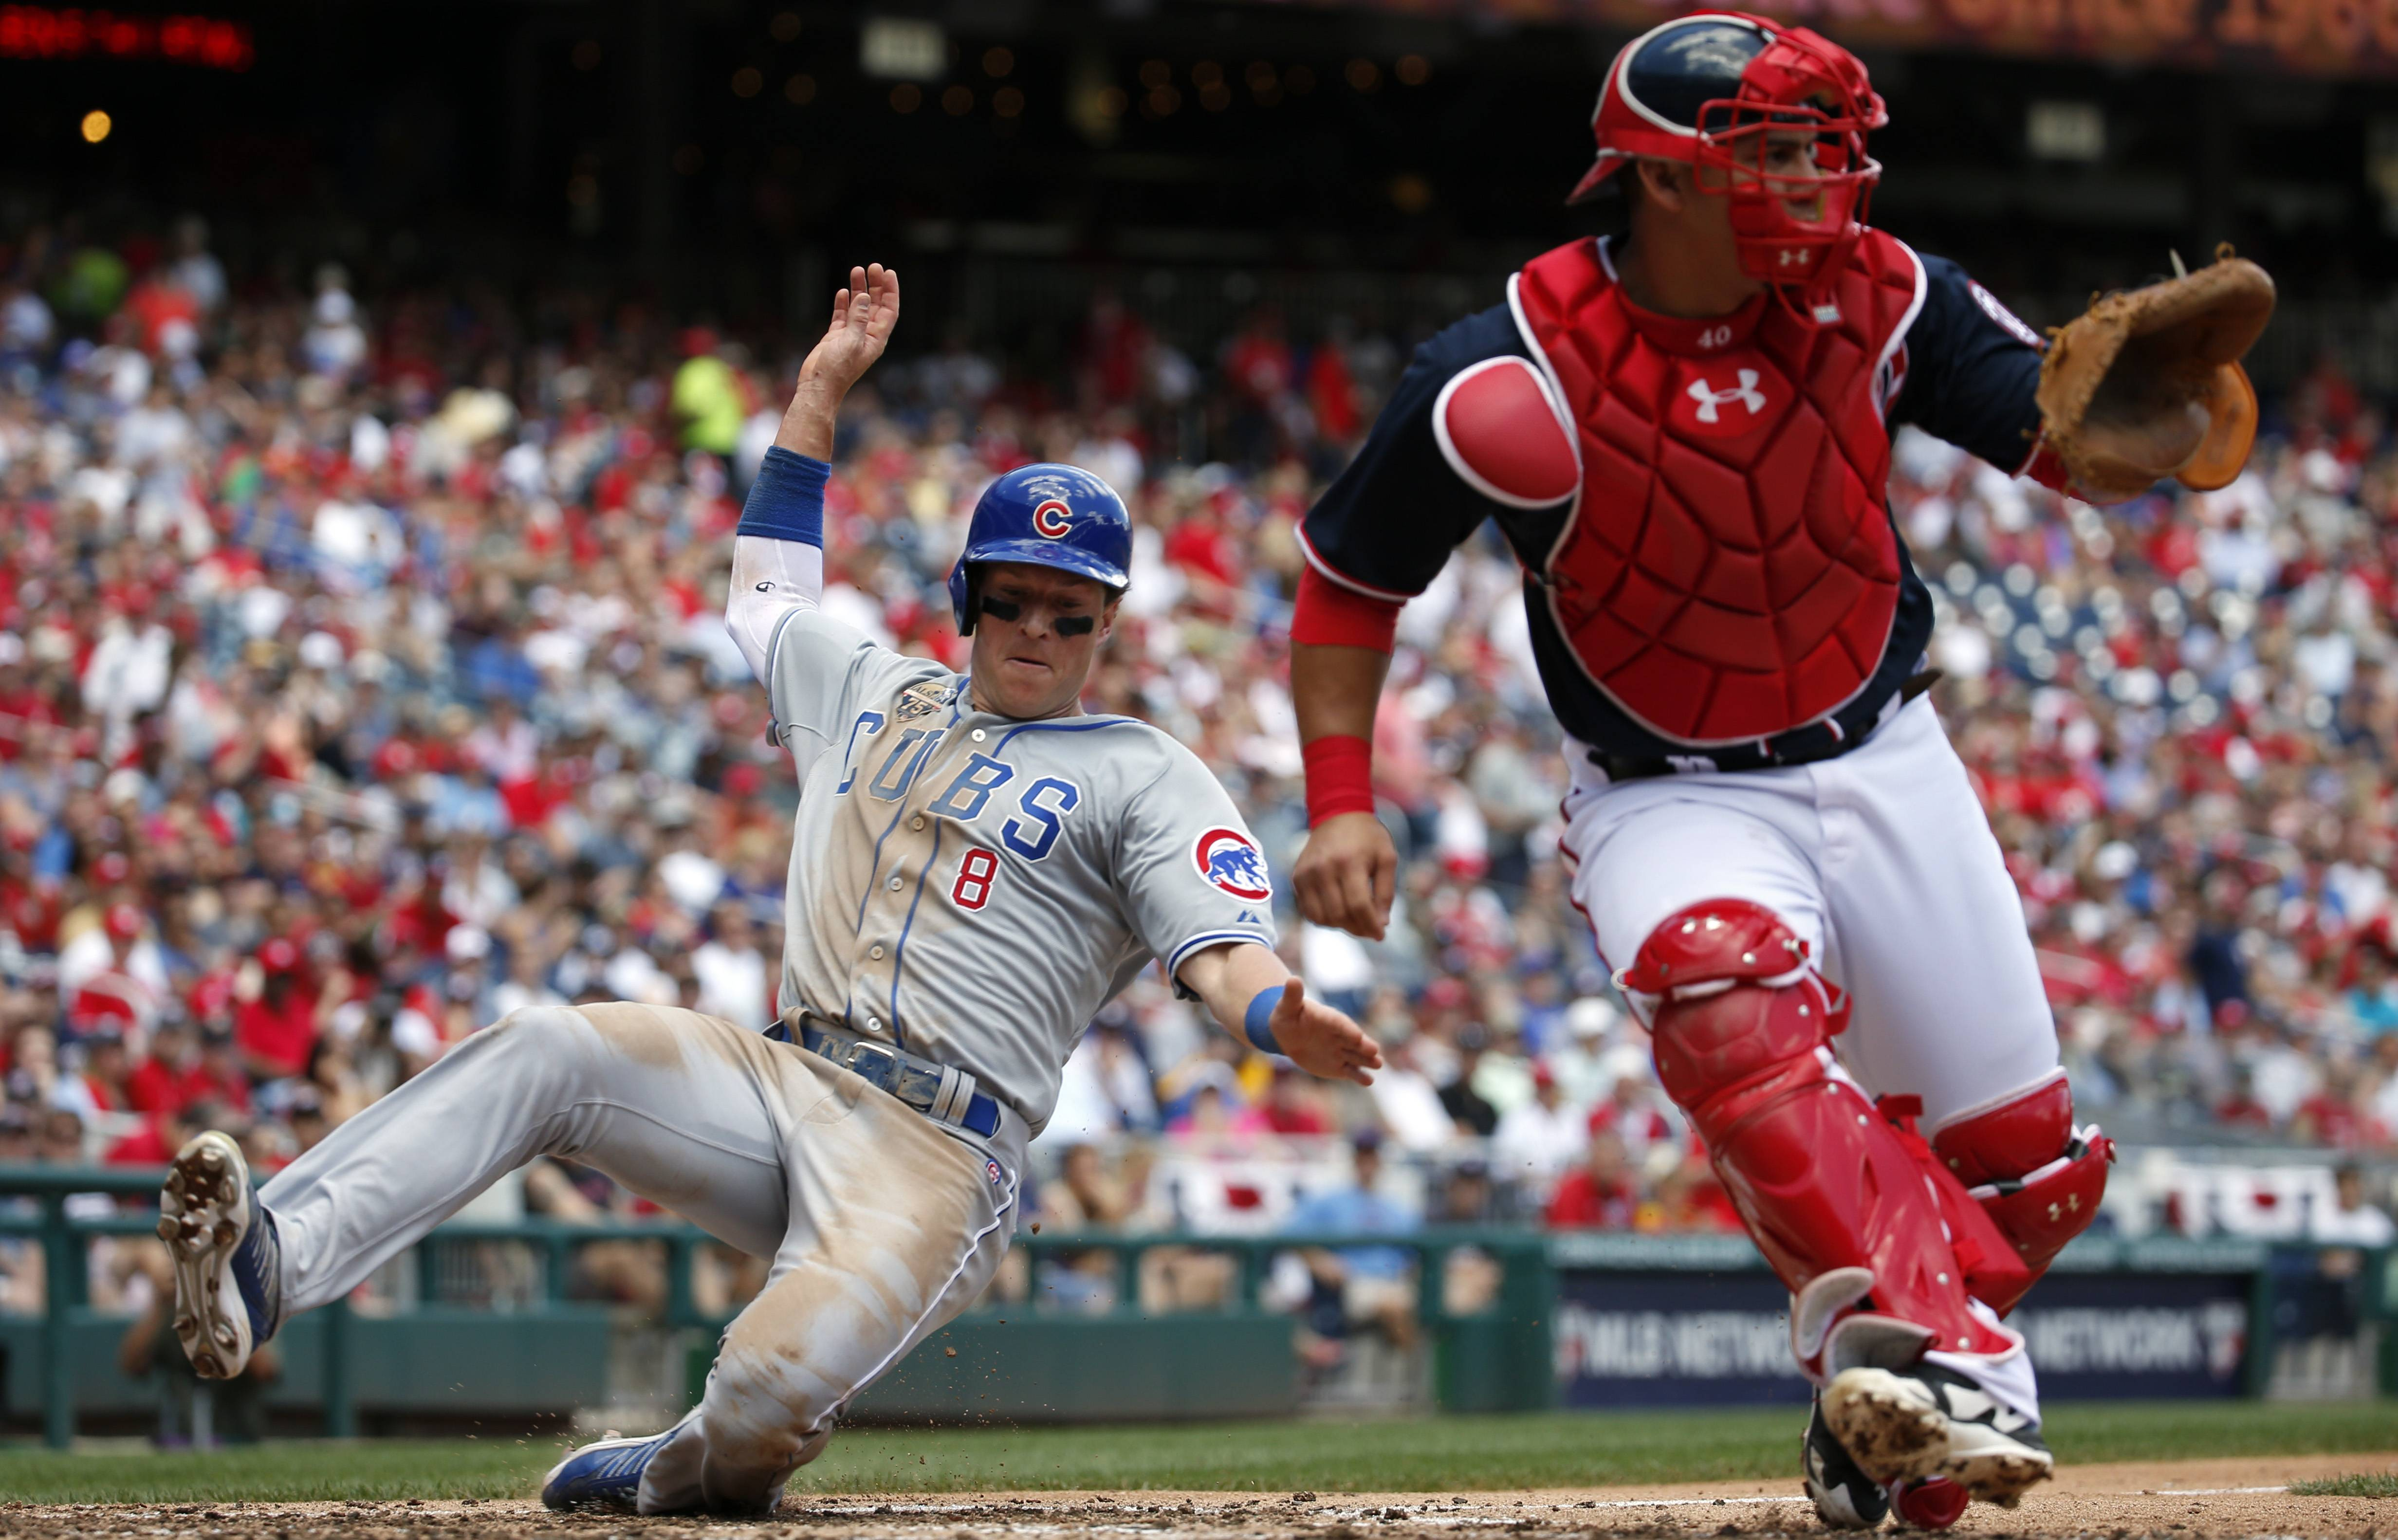 The Cubs' Chris Coghlan slides safely into home as Nationals catcher Wilson Ramos waits for the throw during the fifth inning Friday in Washington, D.C.